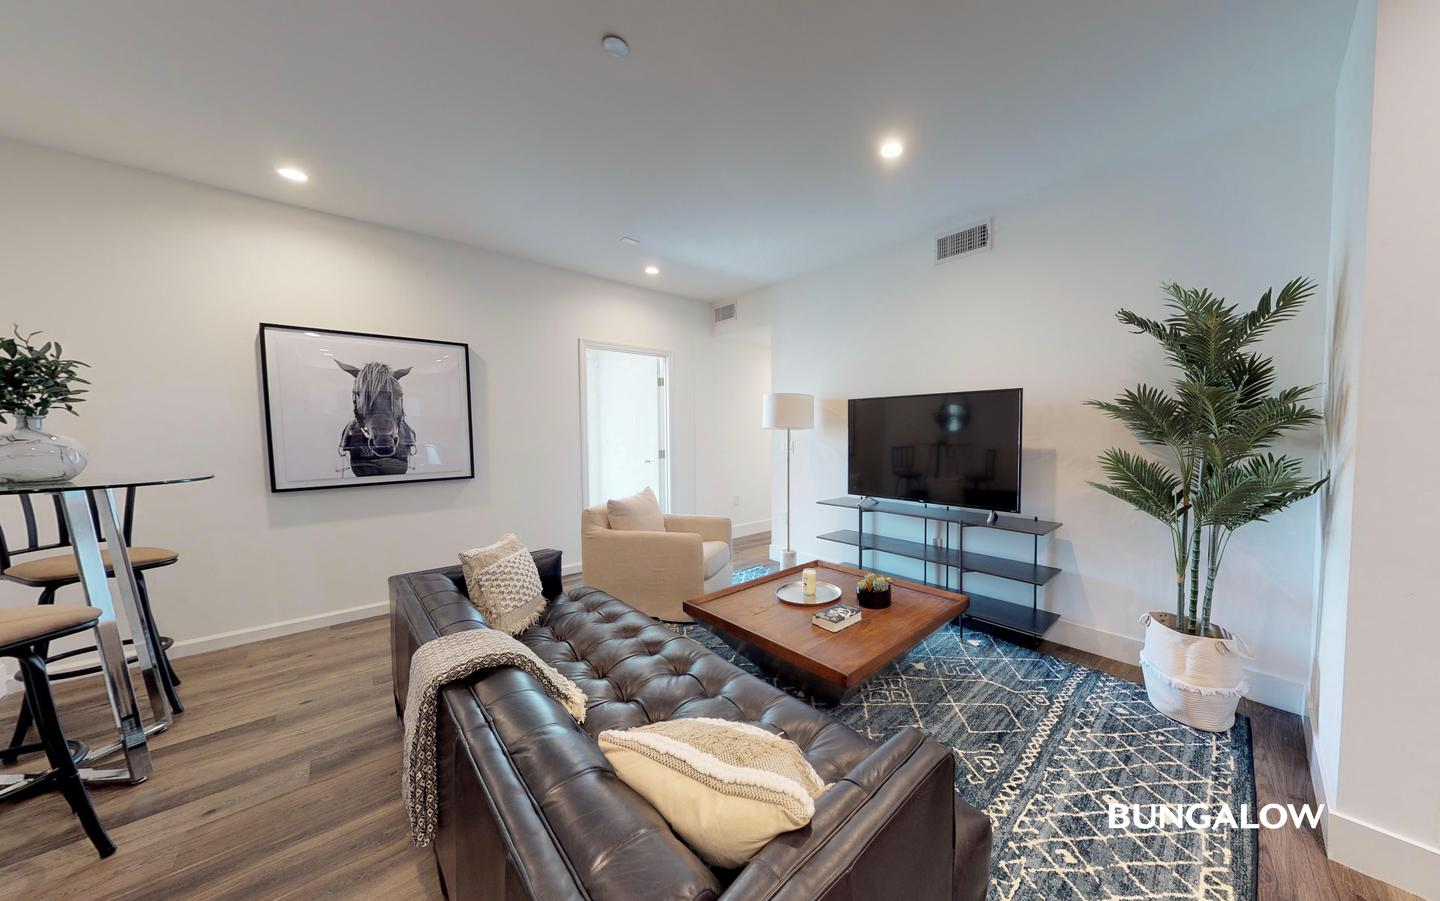 Apartments Near UCLA Private Room in Sleek Hollywood Apartment Near Santa Monica Boulevard for University of California - Los Angeles Students in Los Angeles, CA